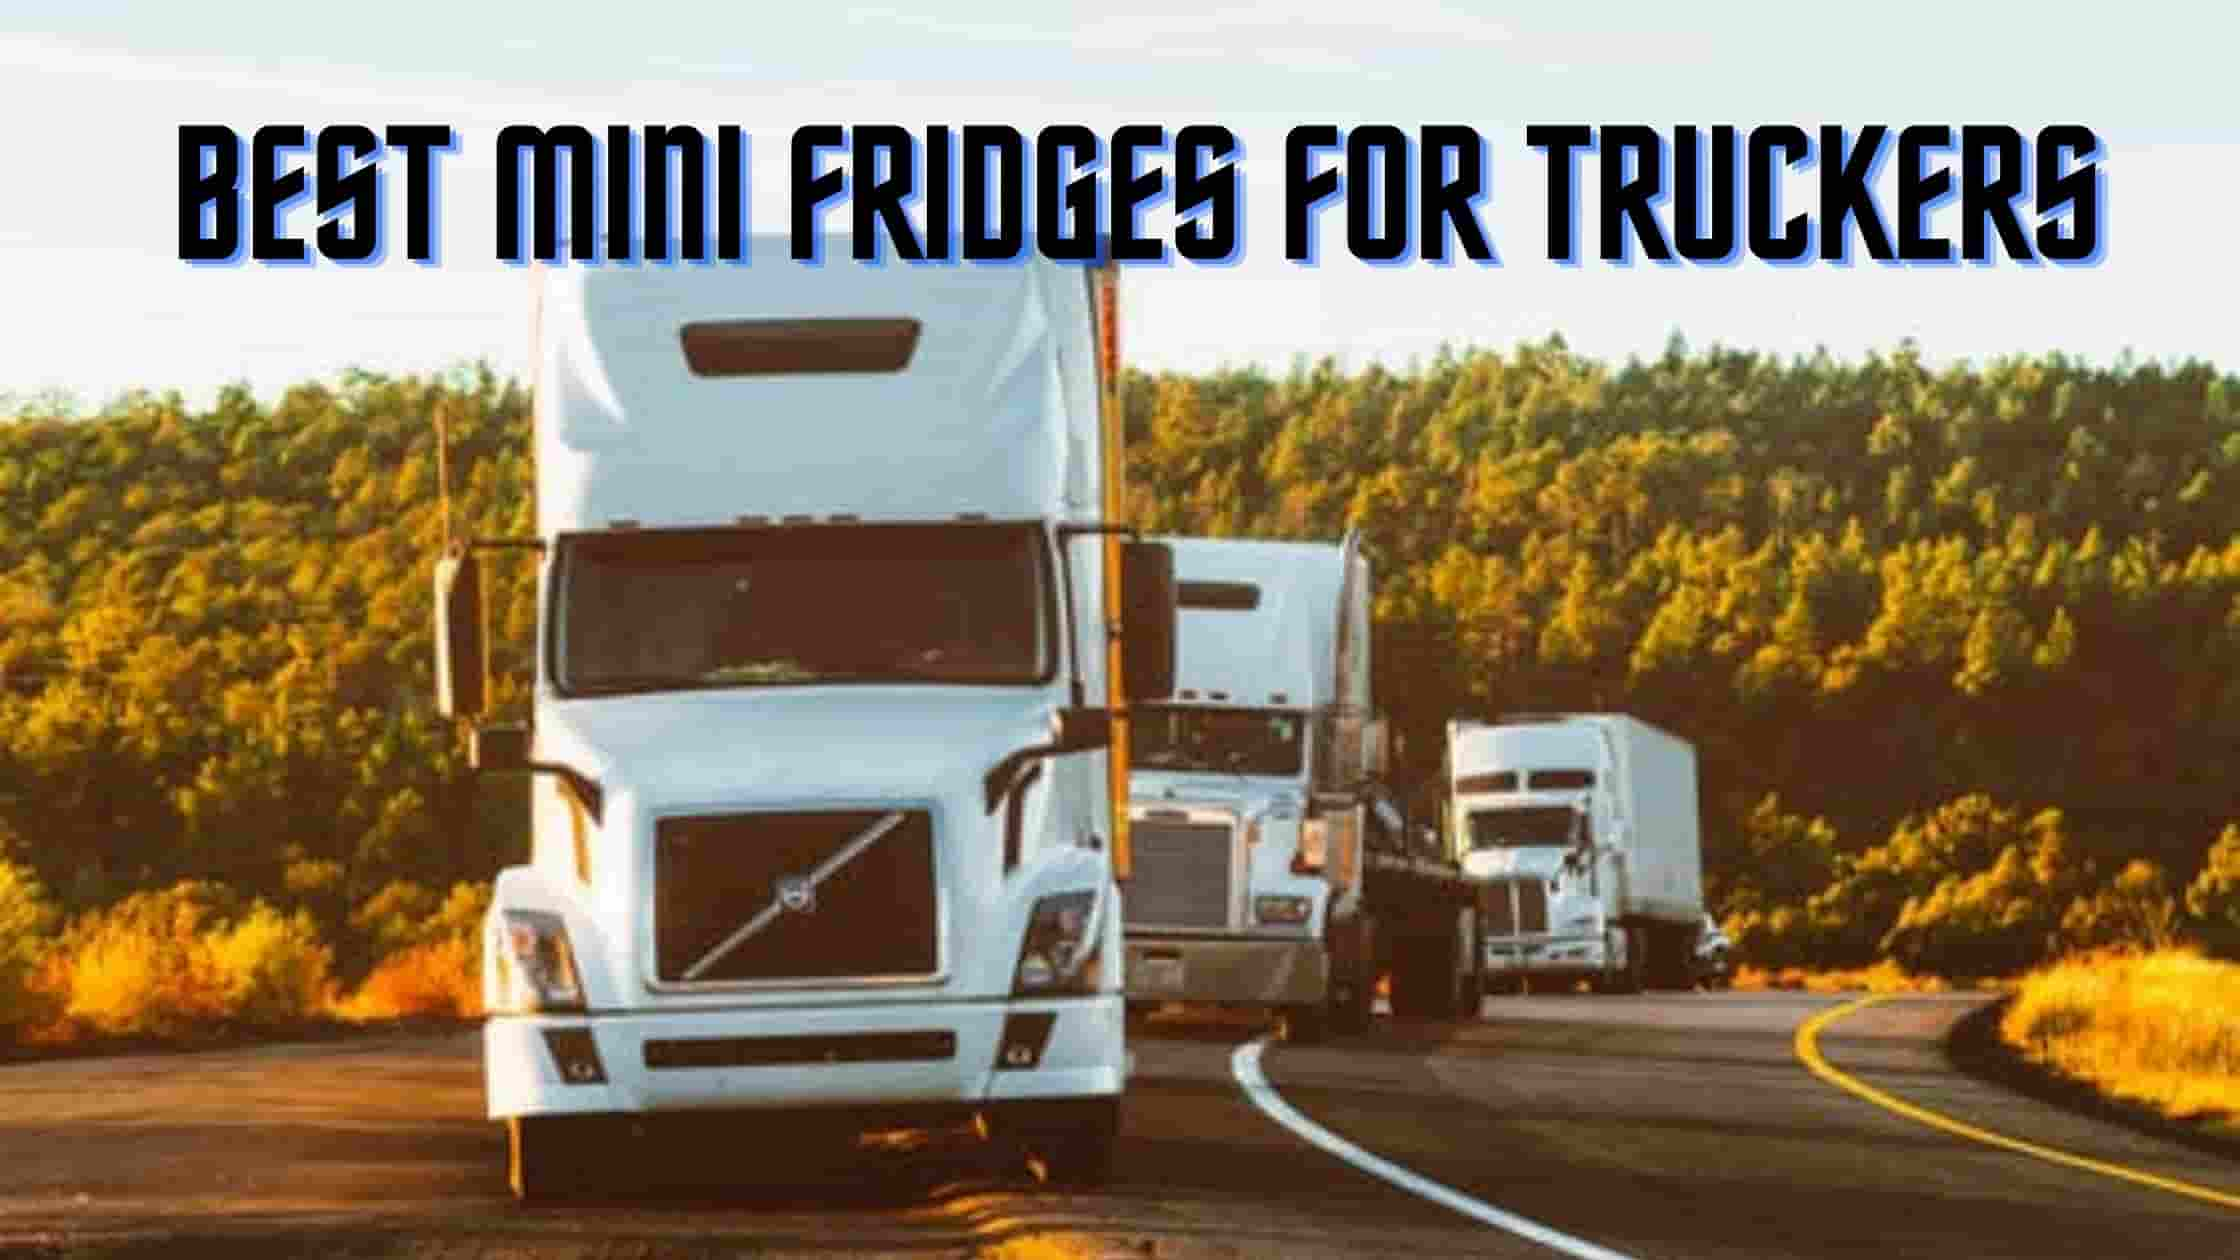 Best Mini Fridges for Truckers